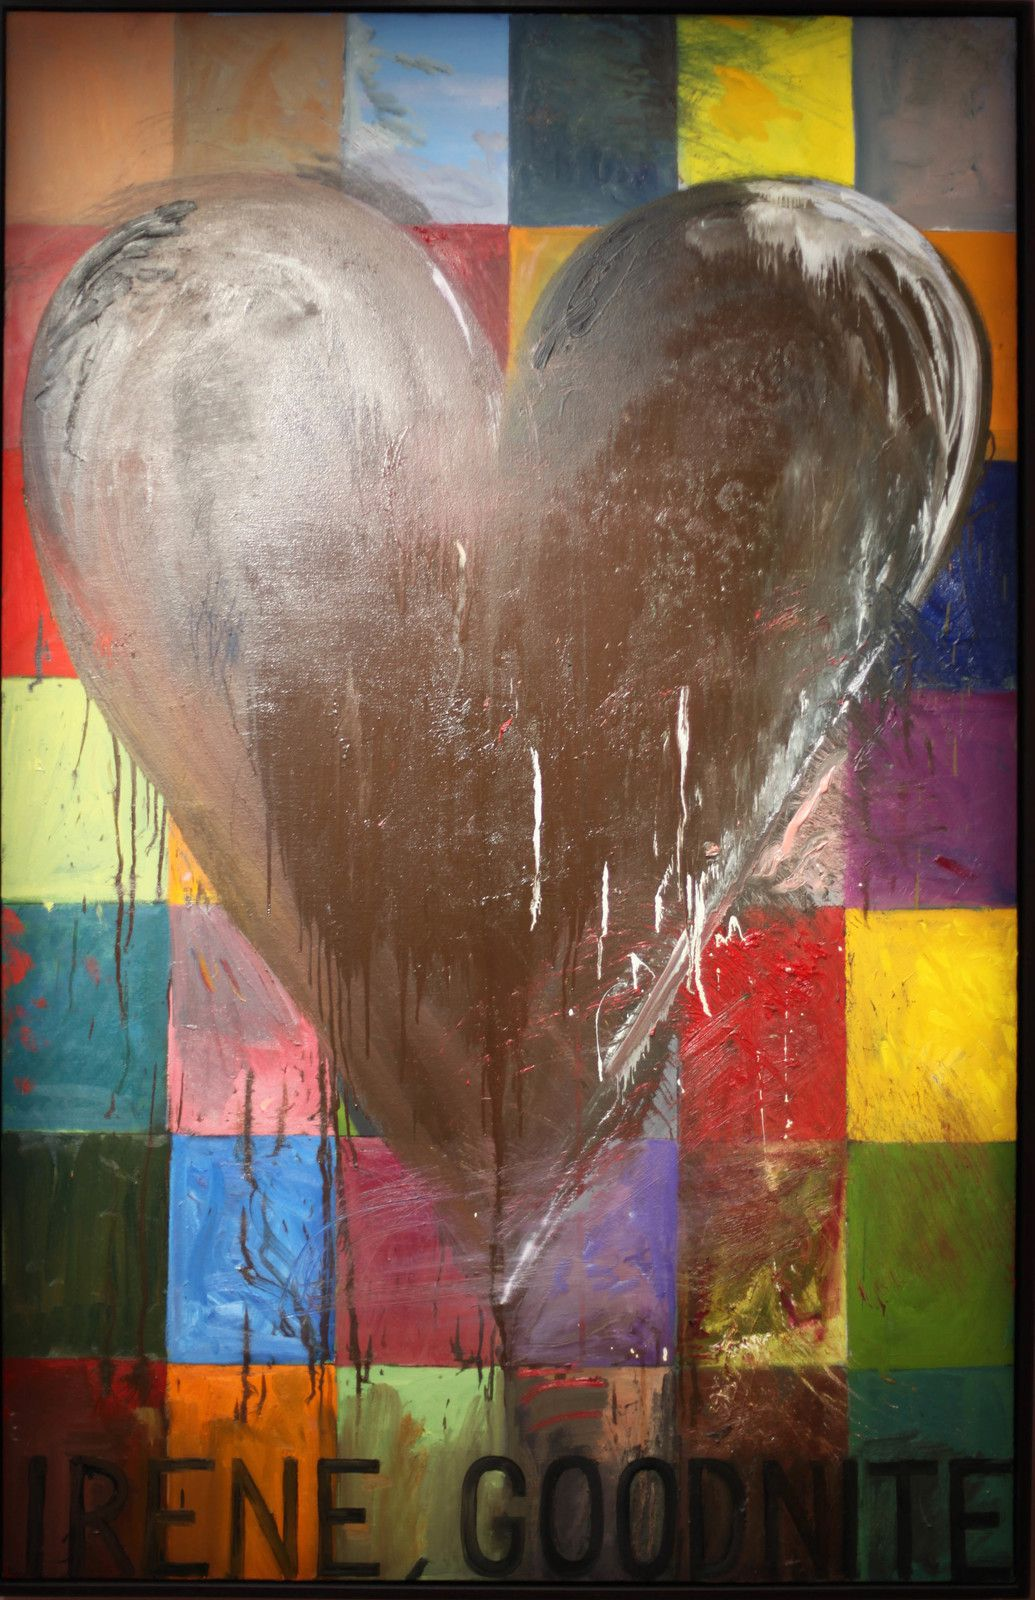 """Irene..."", 1993 de Jim DINE - Courtesy de la galerie Templon © Photo Éric Simon"